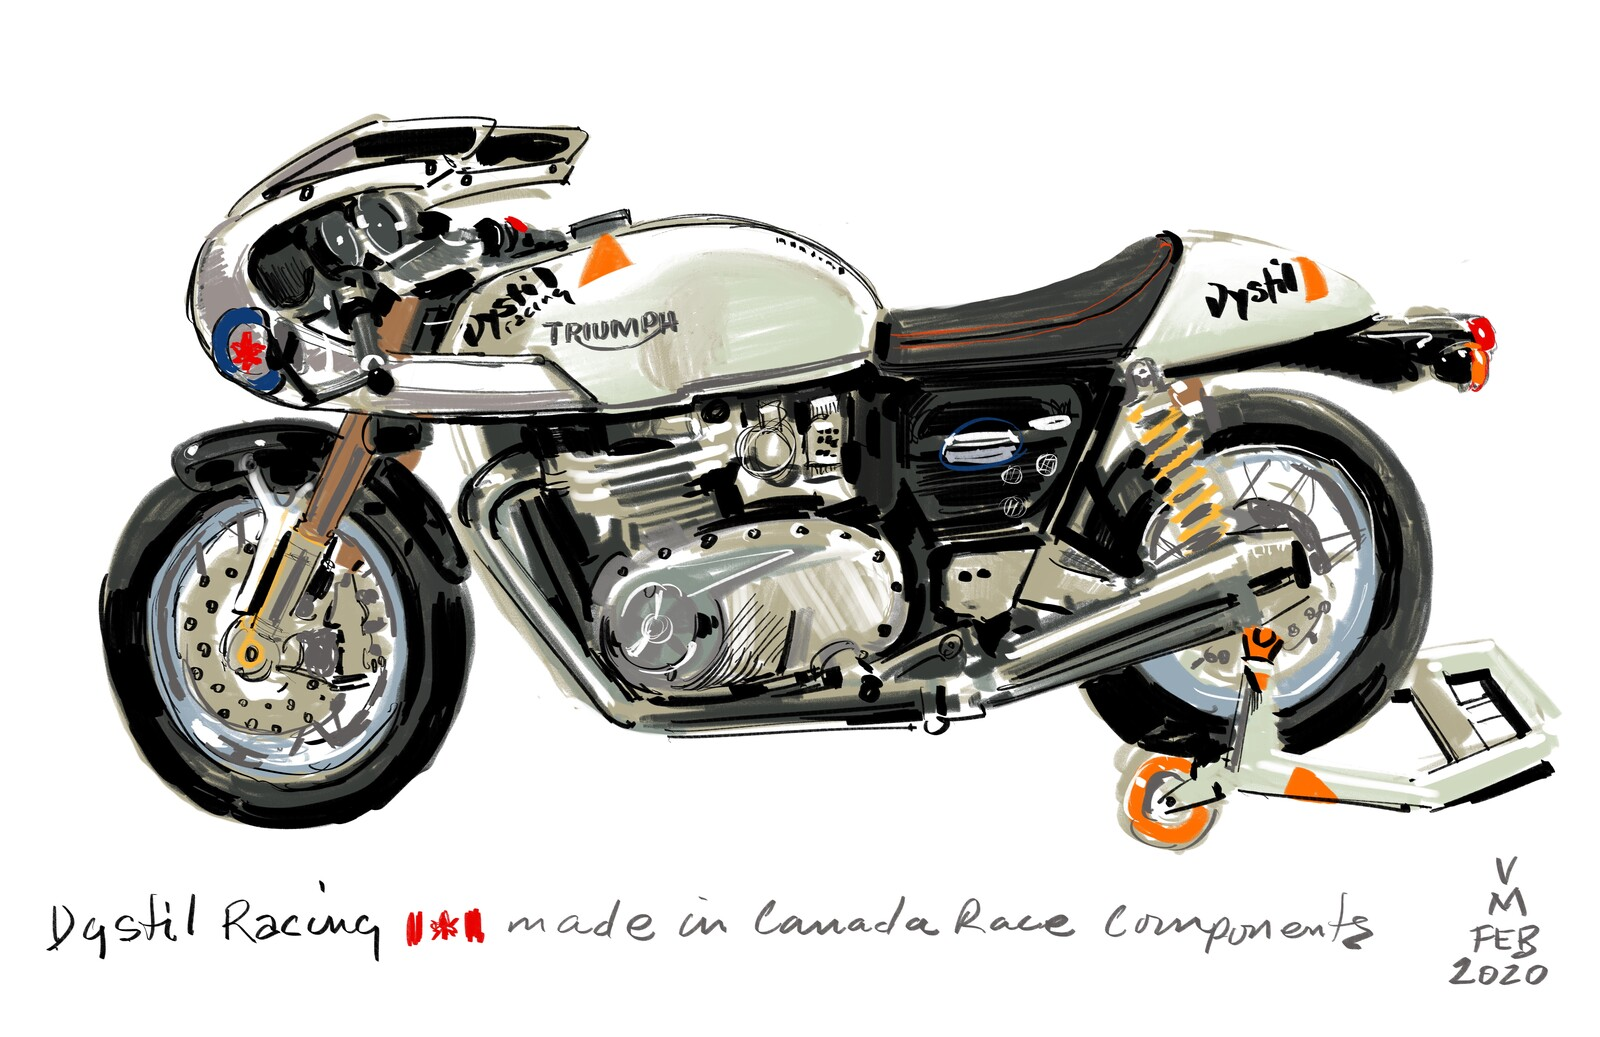 Drawn On the spot at the Toronto CNE Motorcycle show